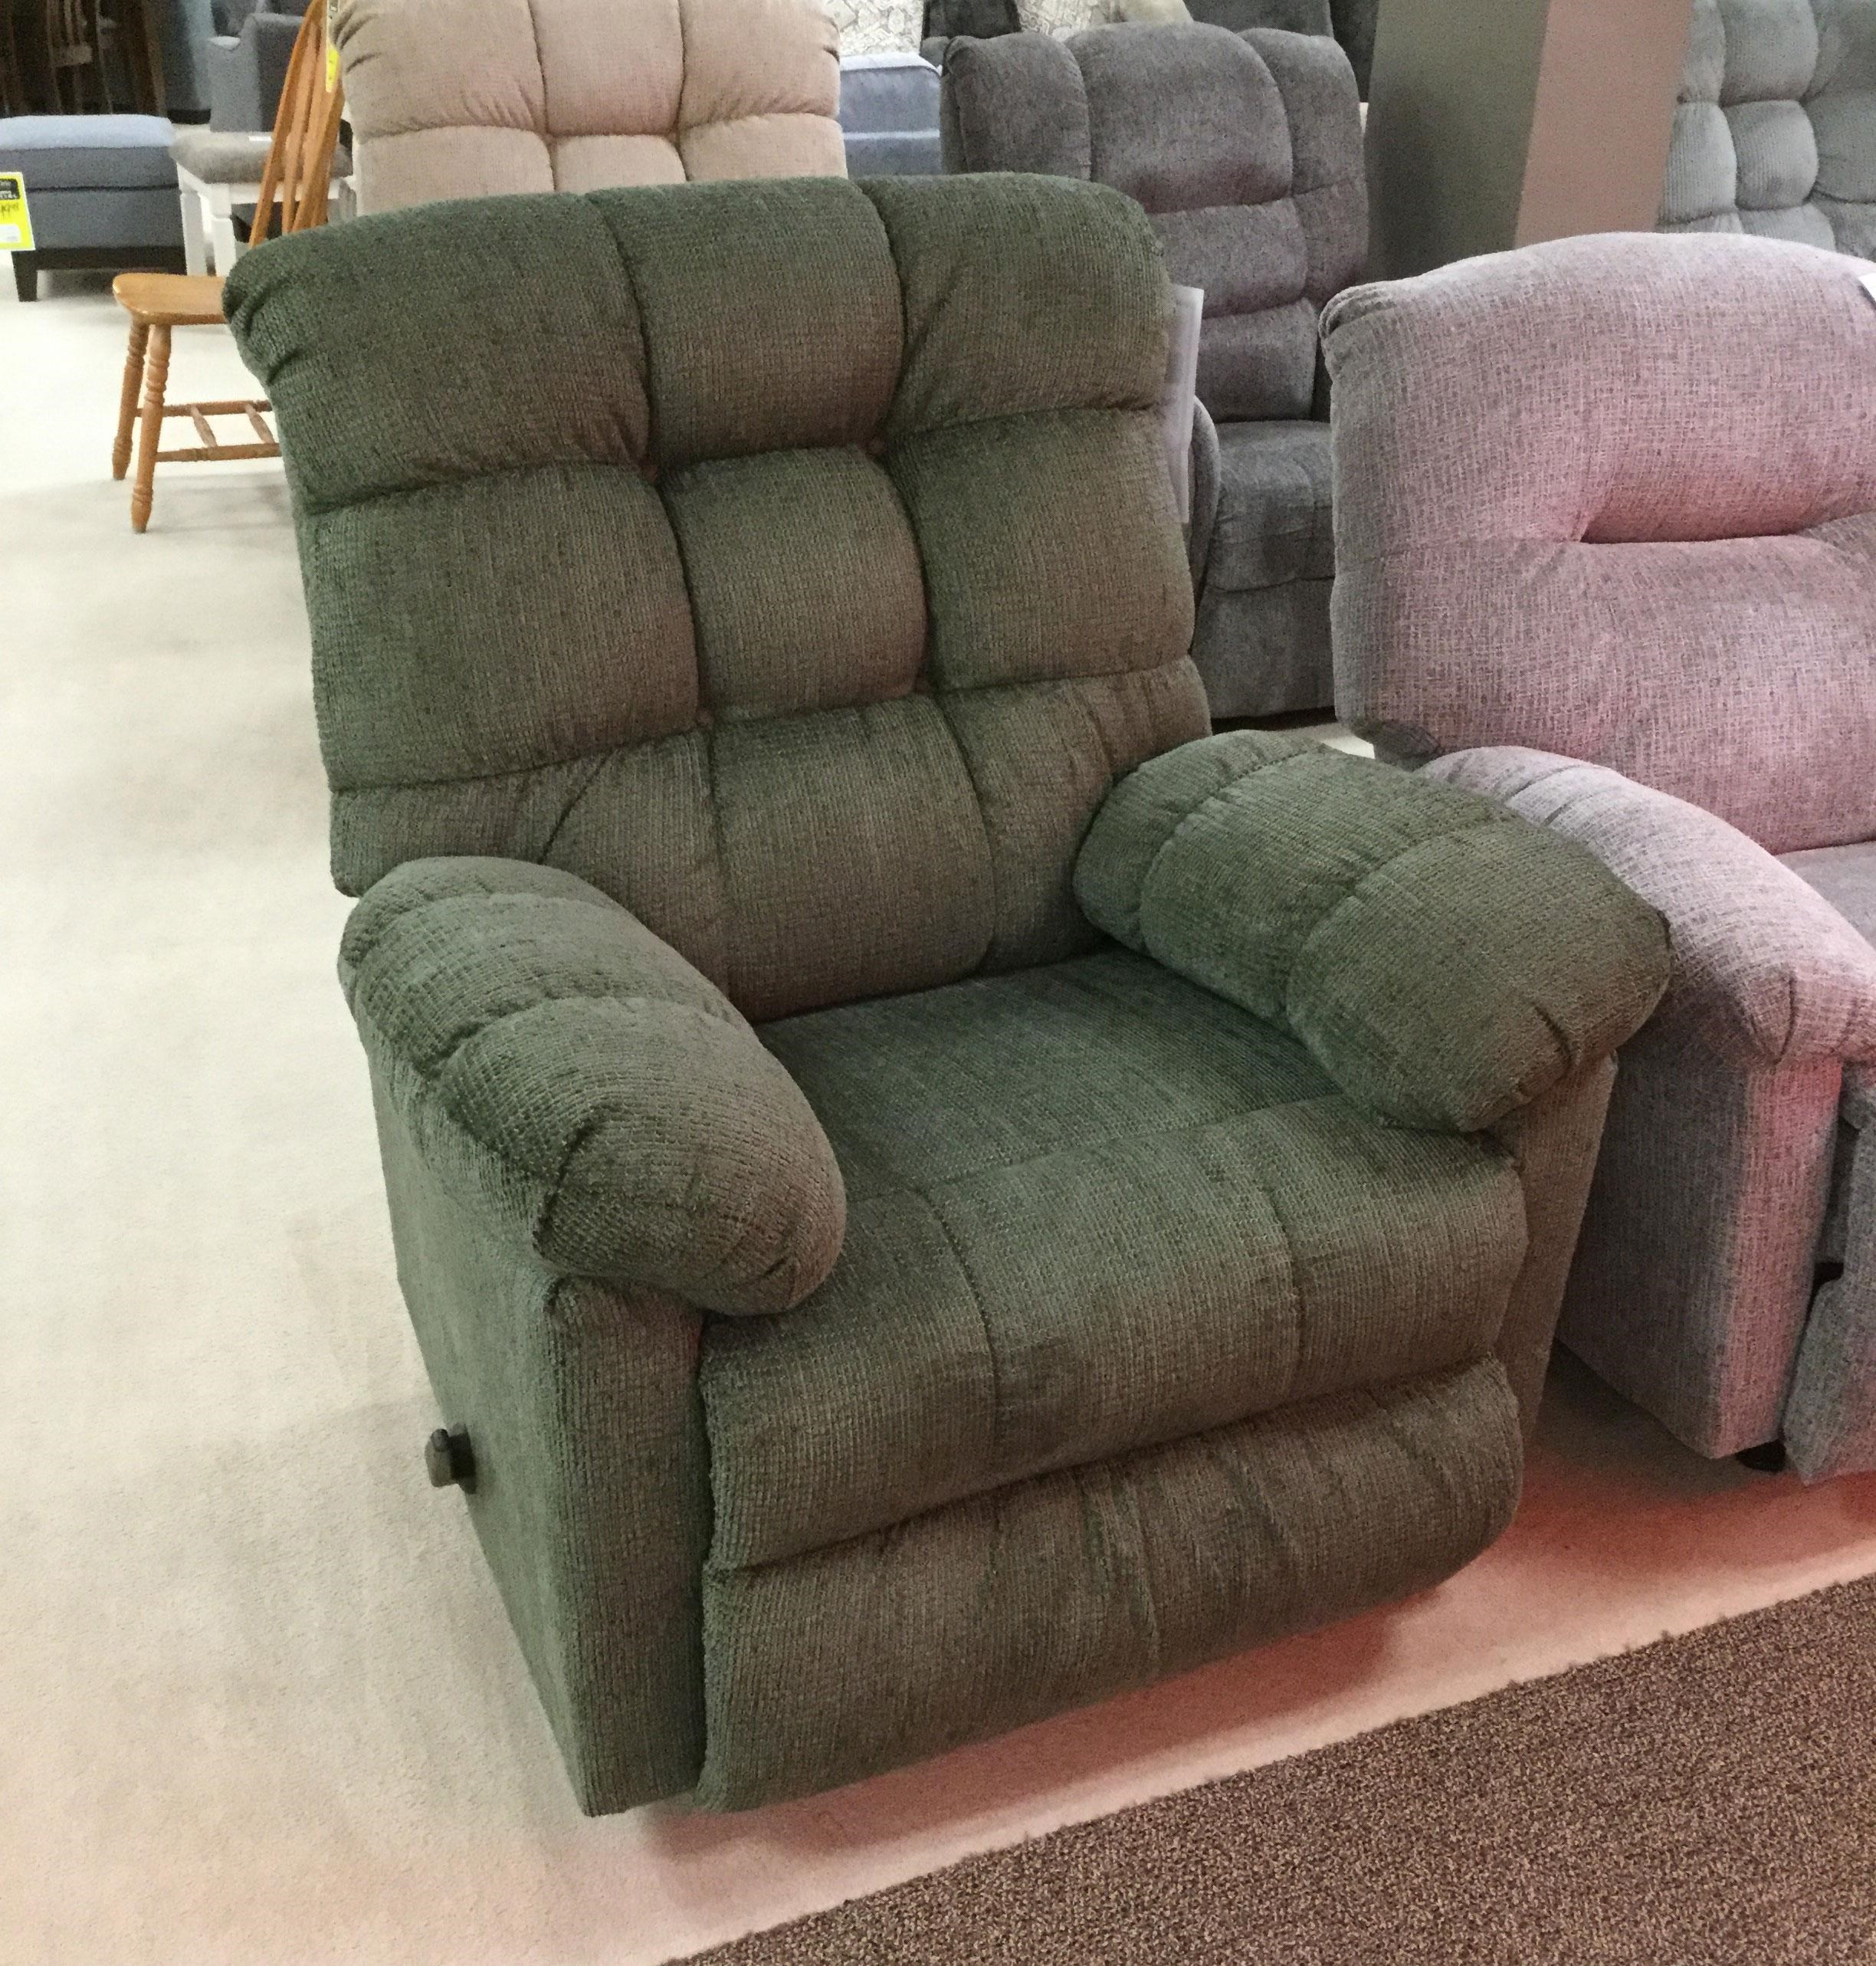 400 Recliner by Serta Upholstery by Hughes Furniture at VanDrie Home Furnishings